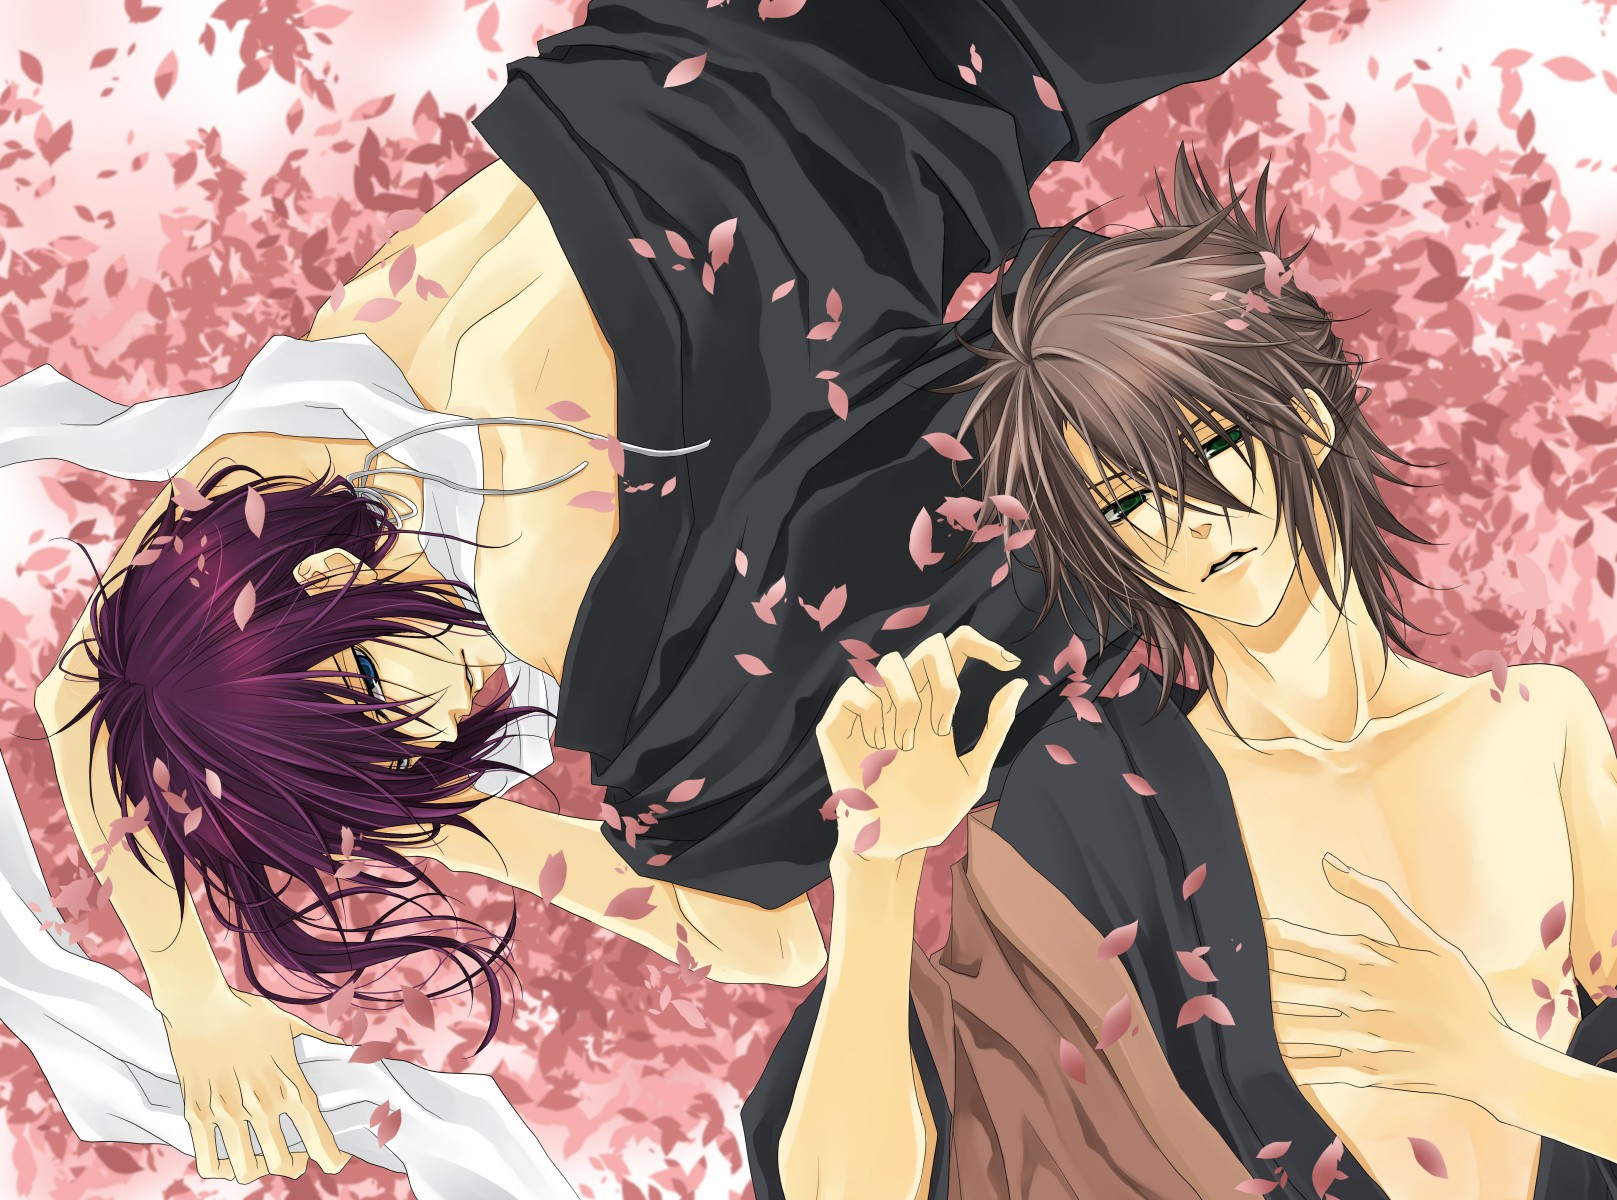 Souji Okita and Saitou Hajime lying among cherry blossoms Hakuouki Shinsengumi Kitan yaoi fanart romantic yaoi HD wallpaper two boys lying next to each other - Let's spend eternity together hakuoki-shinsengumi-kitan-yaoi Yaoi desktop wallpapers Souji Okita Saitou Hajime Bishōnen - fanarts on yaoi-online.com